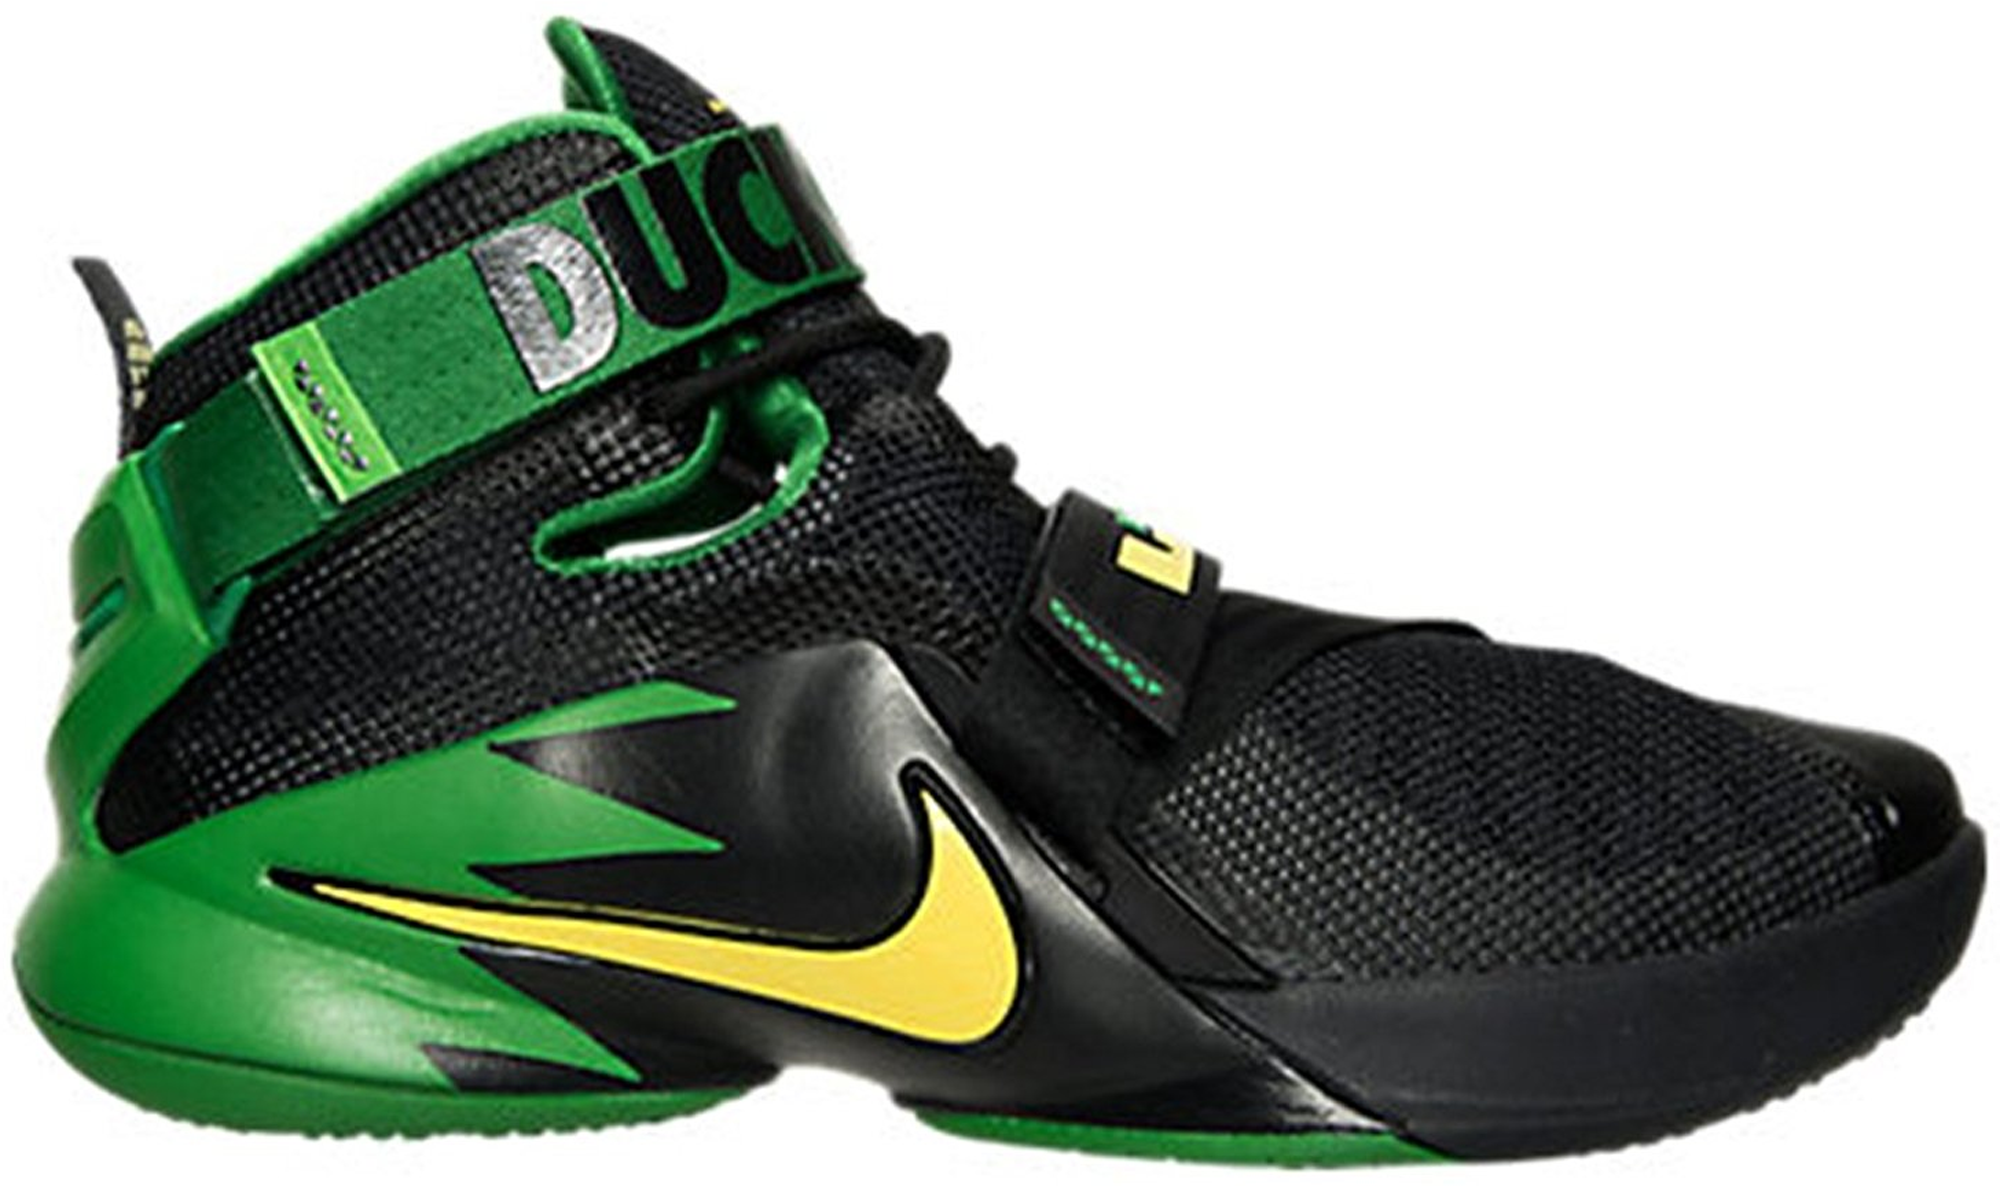 lebron soldier 9 concept - photo #40